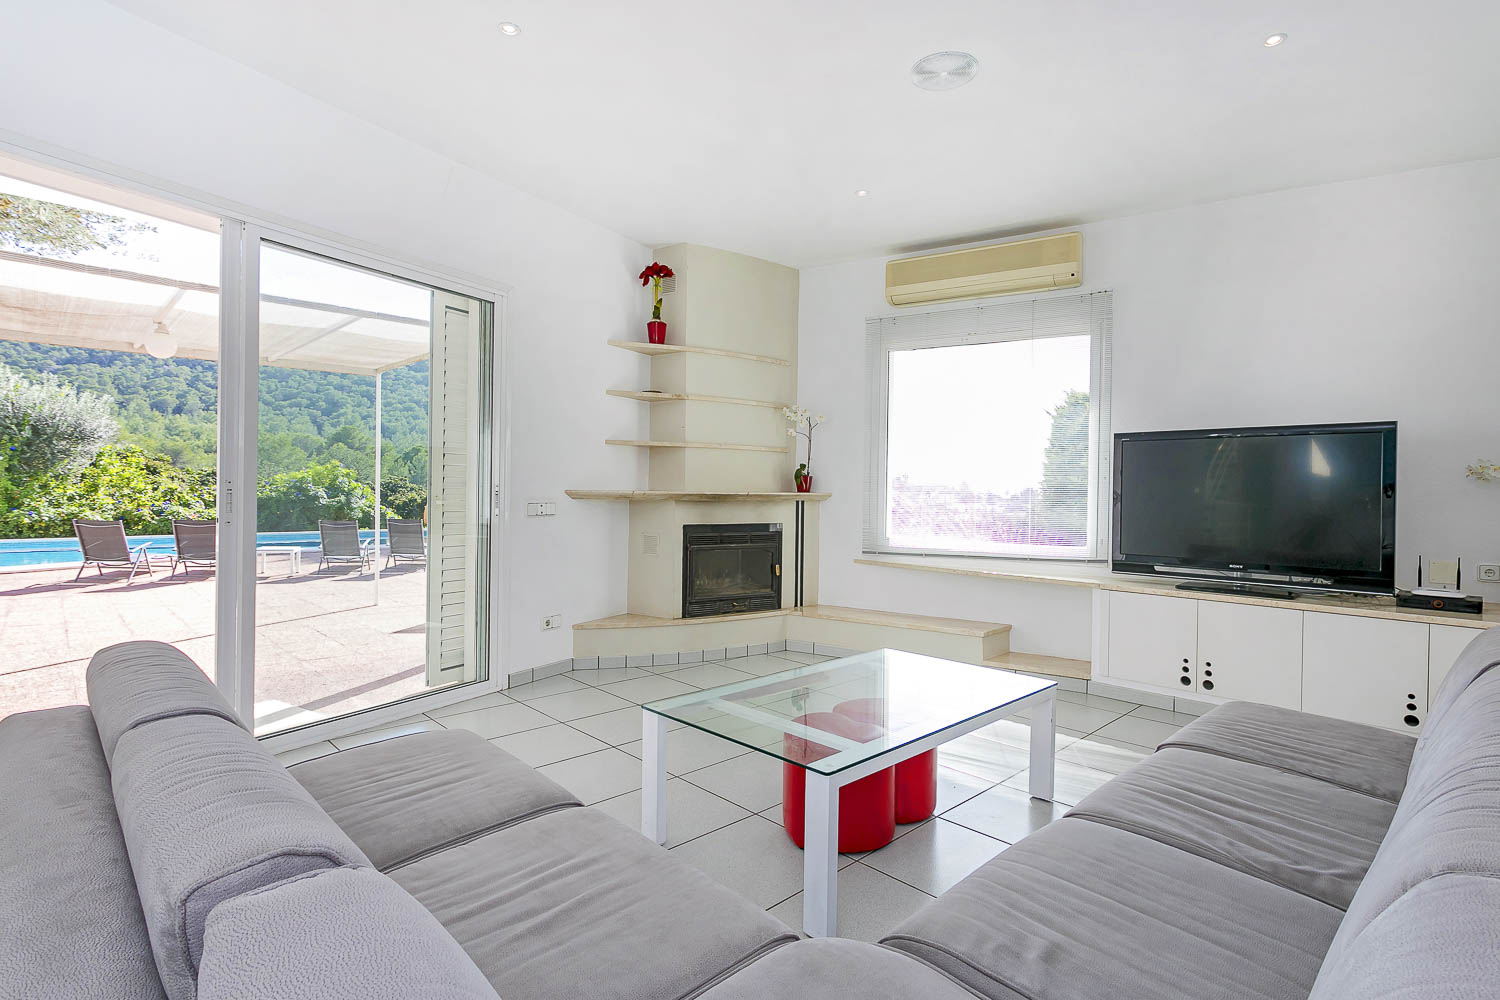 Bright and spacious living and television area with views to the countryside and direct access to the pool and garden